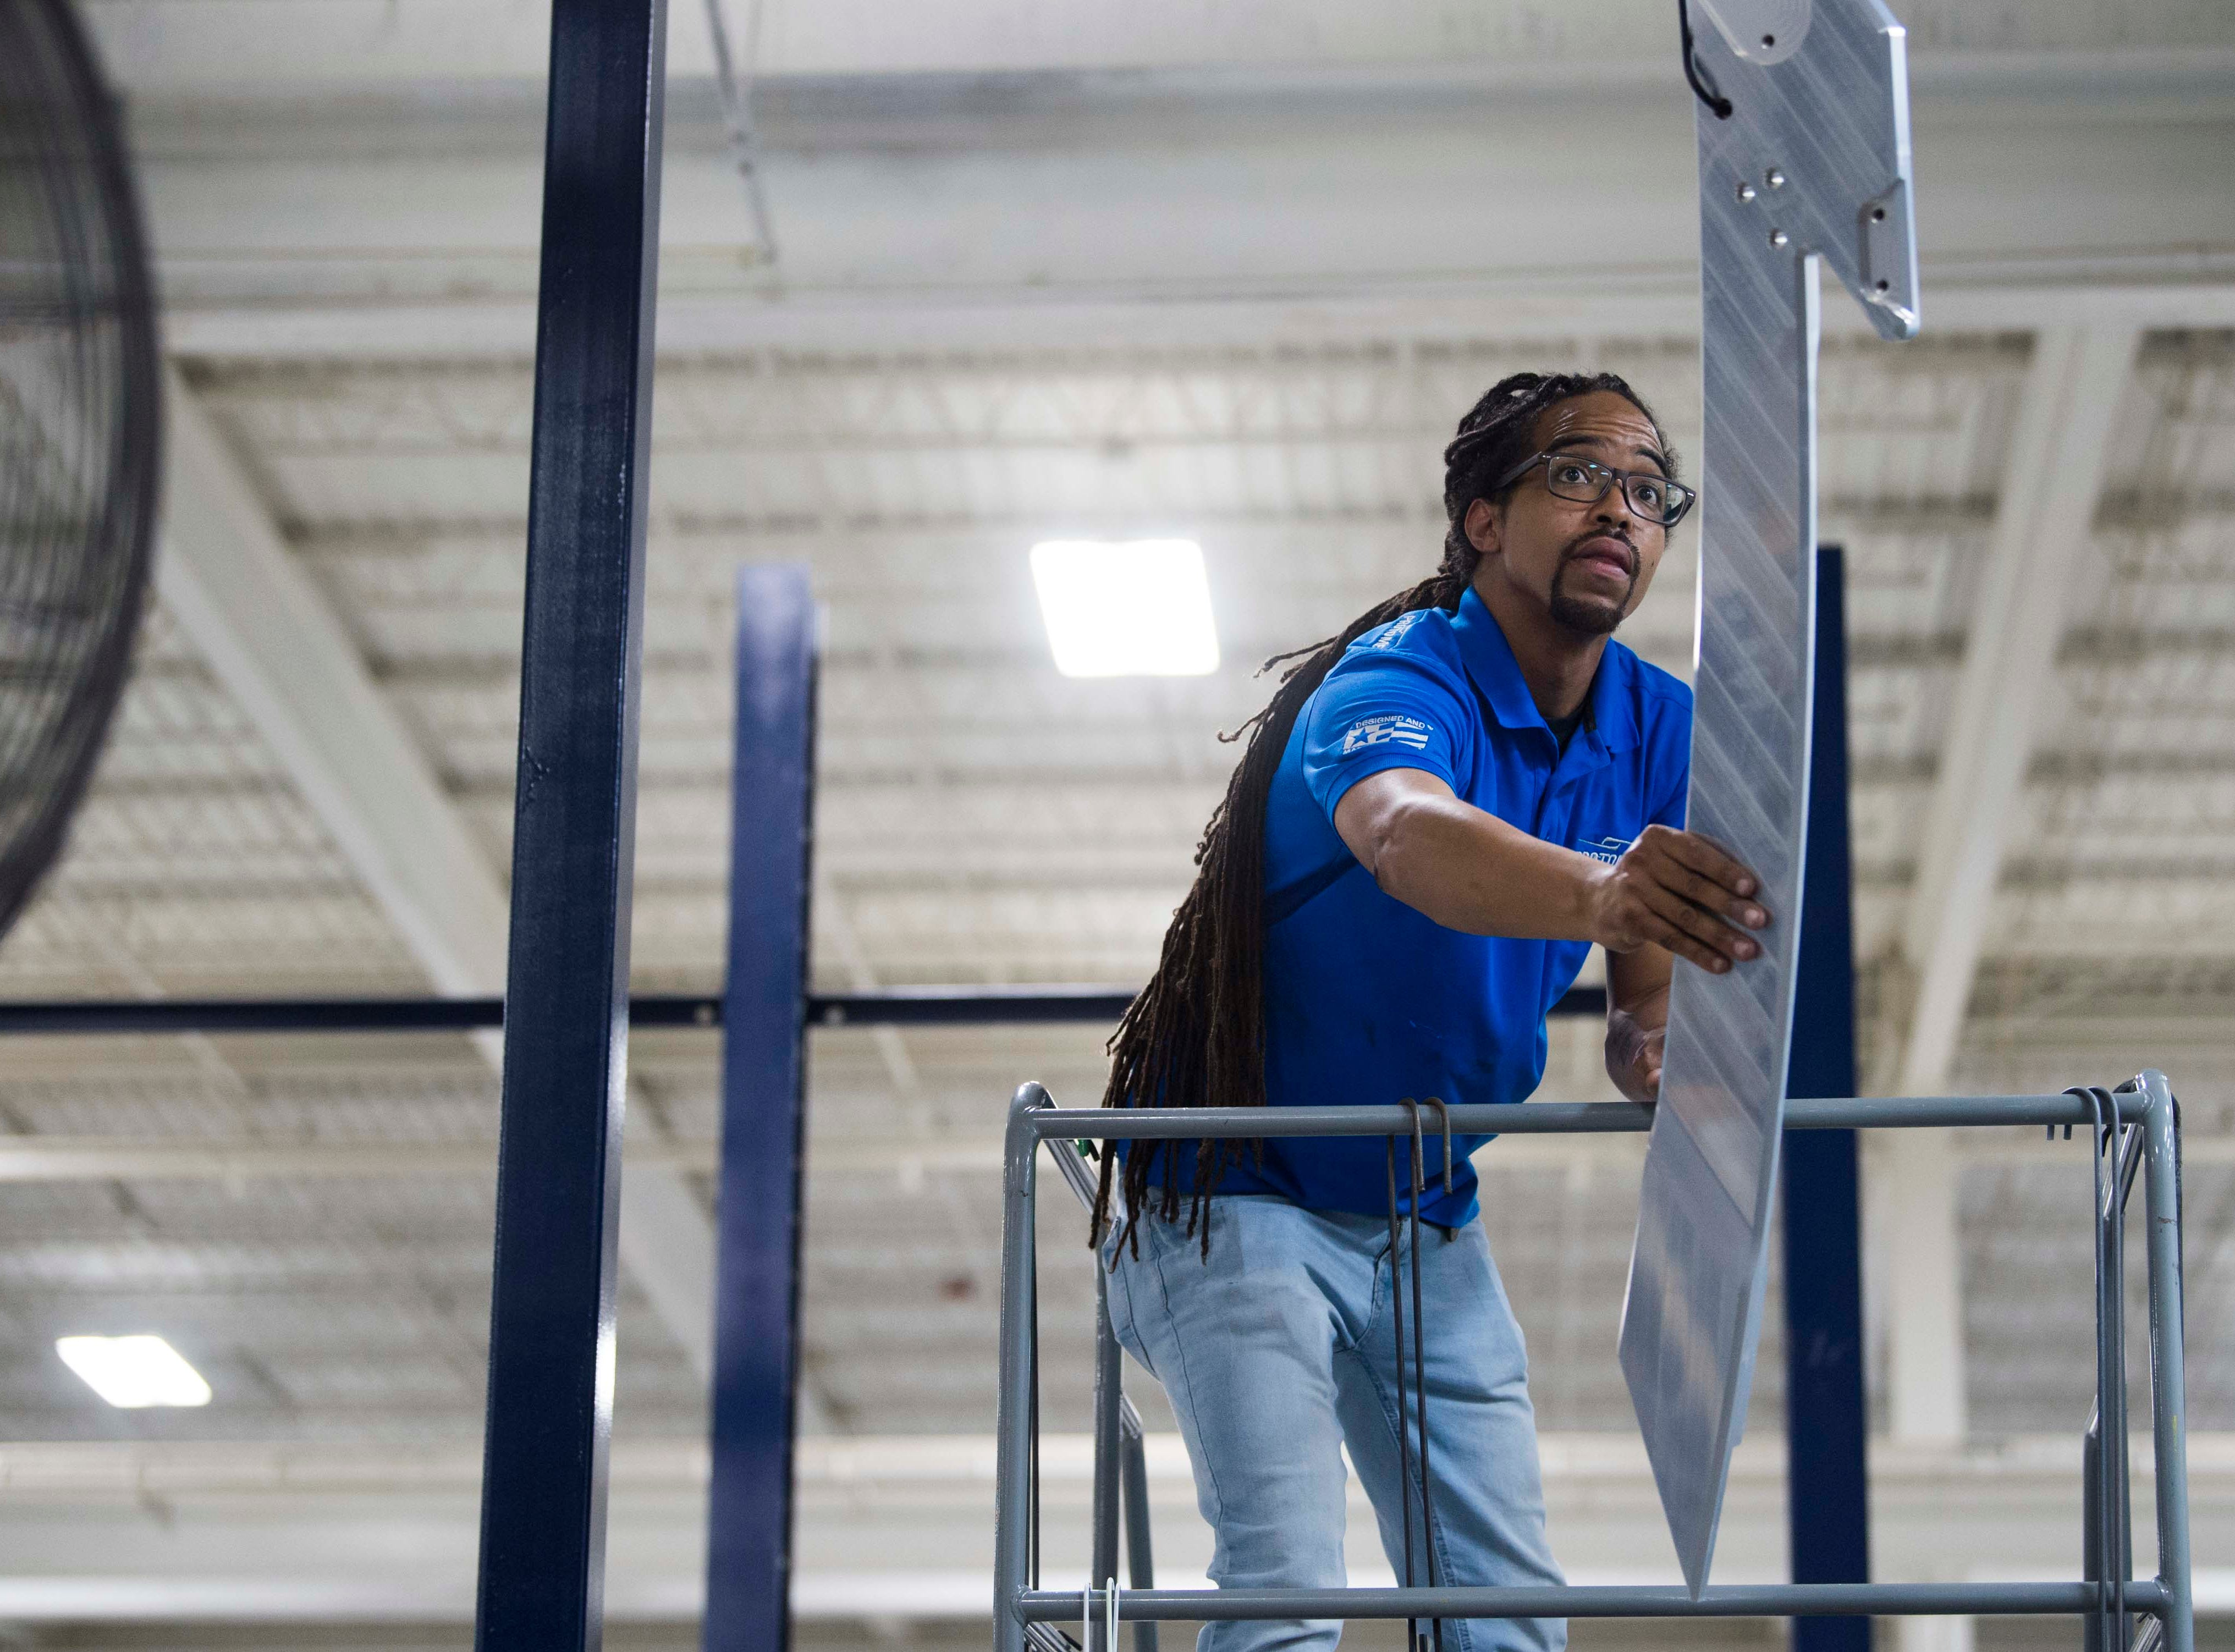 Trey Simmons of Oak Ridge works in Protomet Corporation's new $30 million, 244,000 square foot plant in Loudon County Thursday, April 18, 2019. When fully staffed the facility will create 200 new jobs for Loudon County.